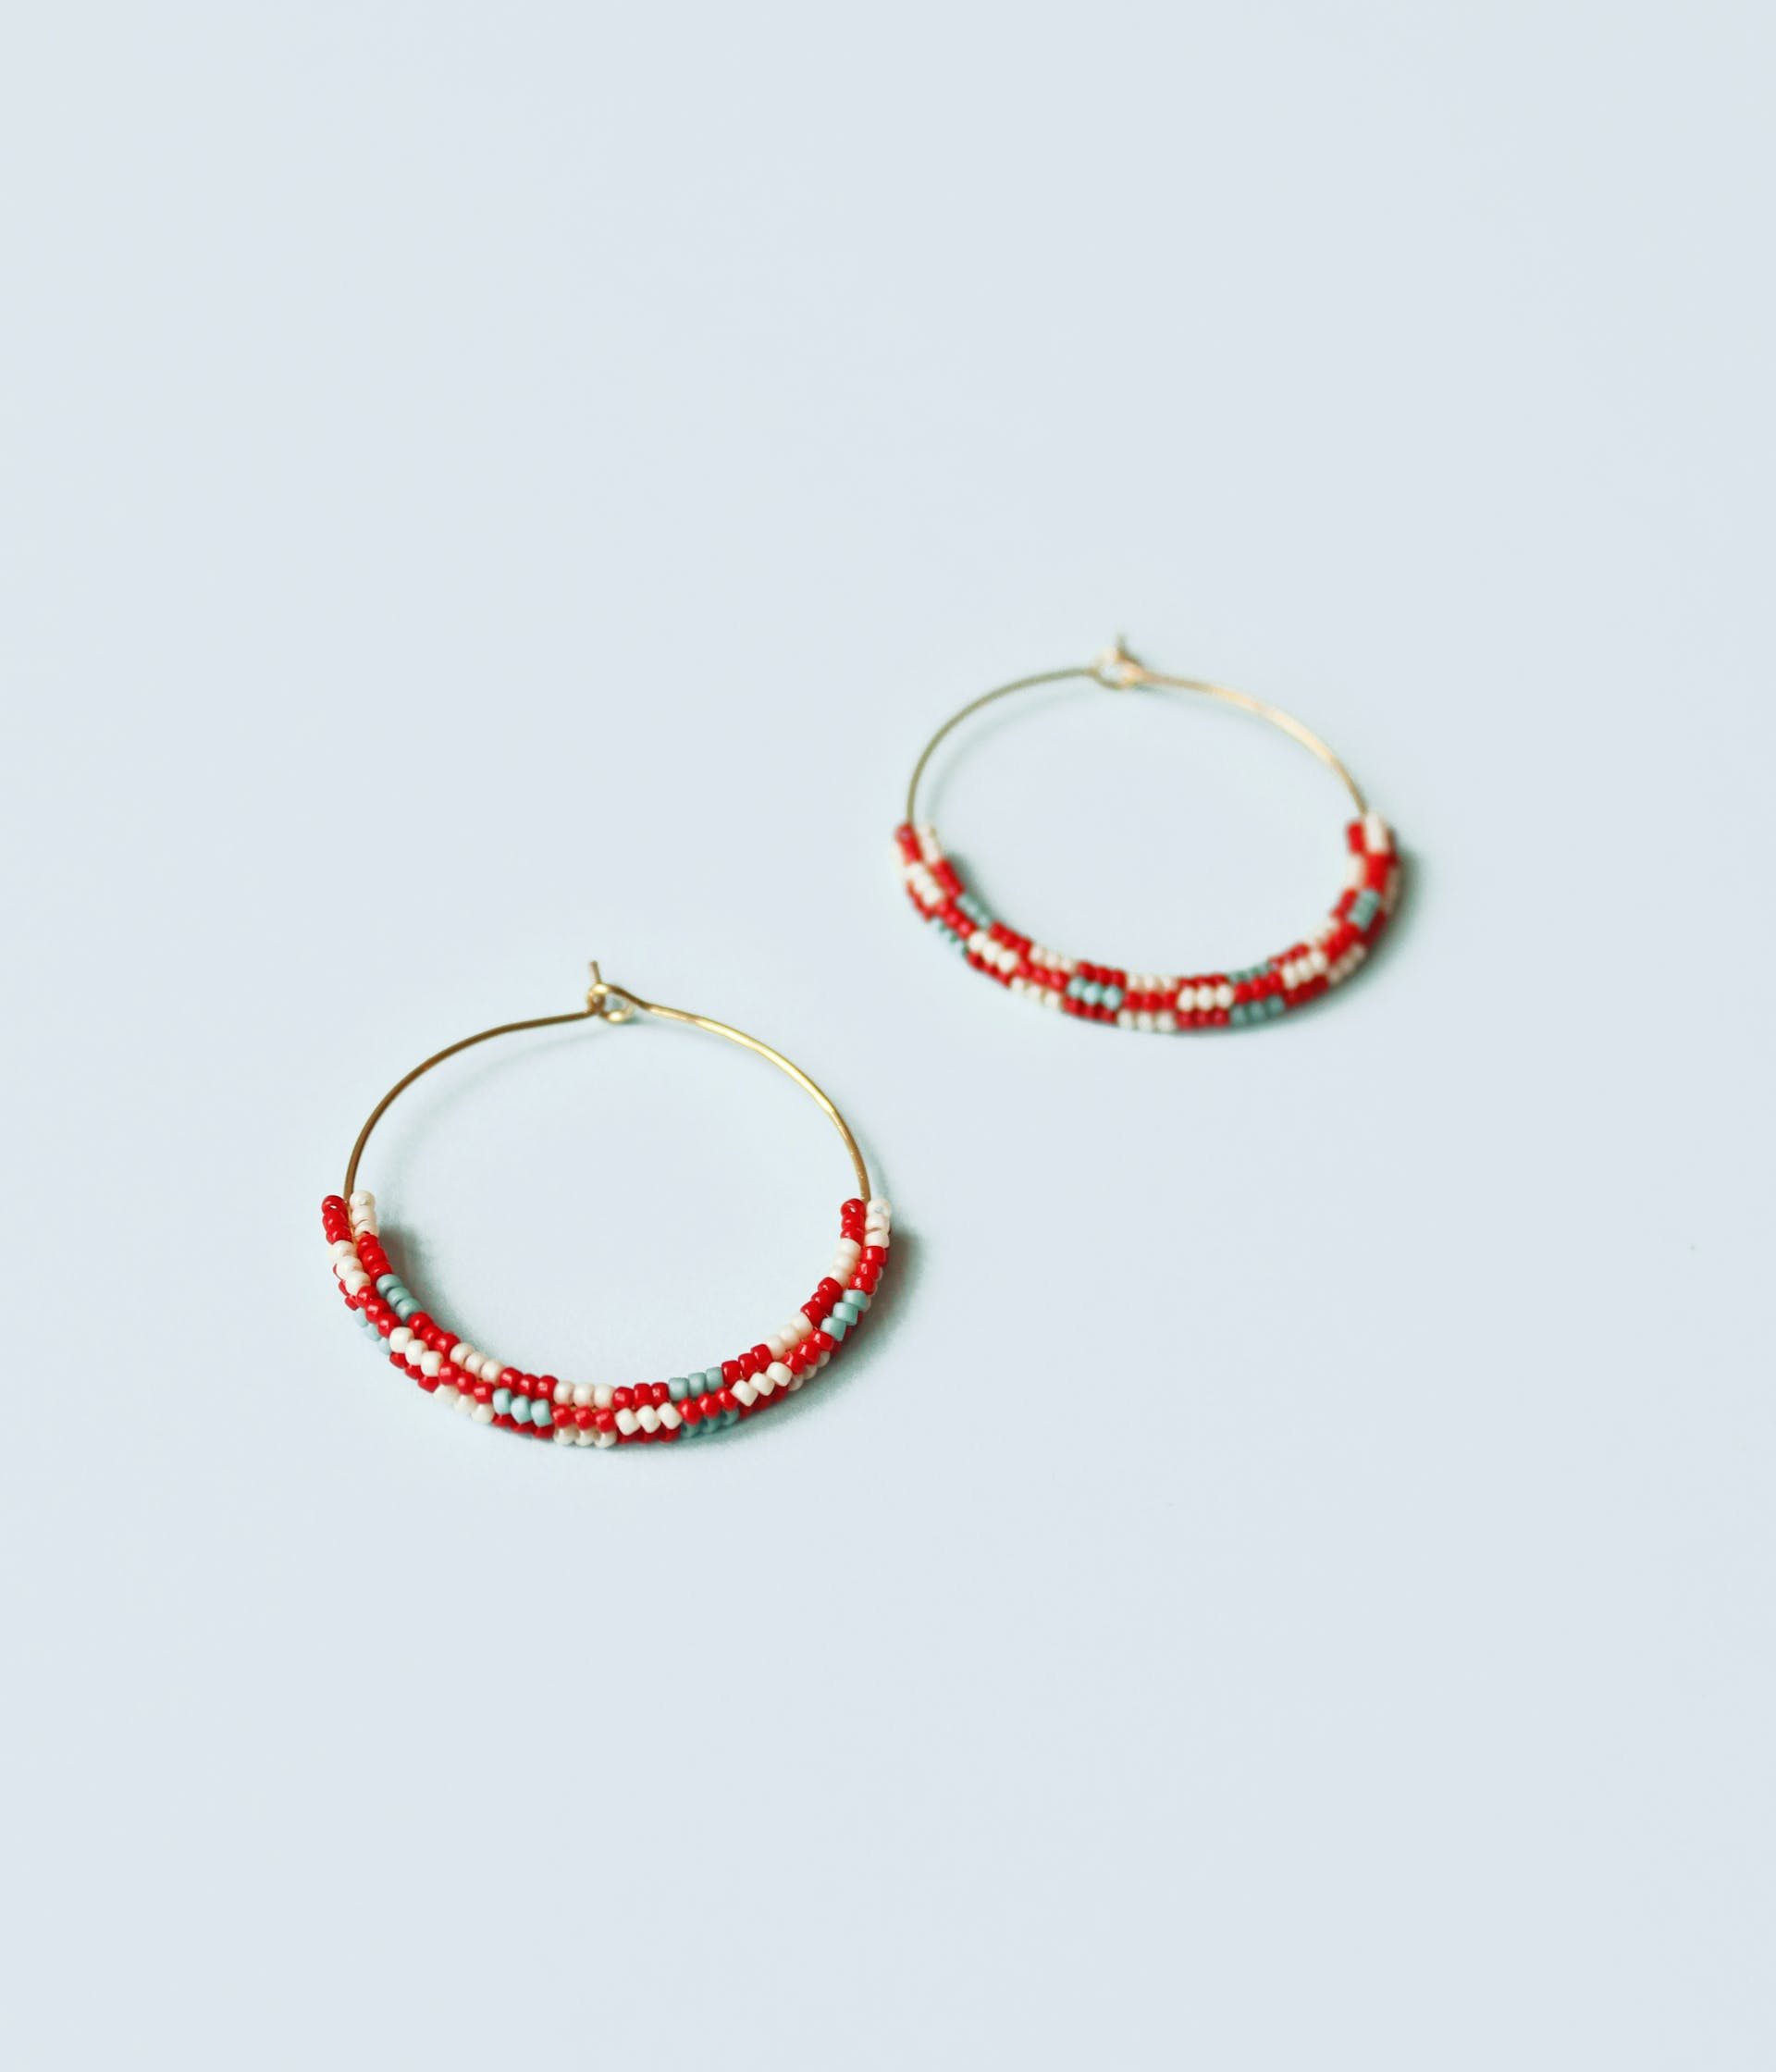 Handcrafted earrings made from tiny glass beads